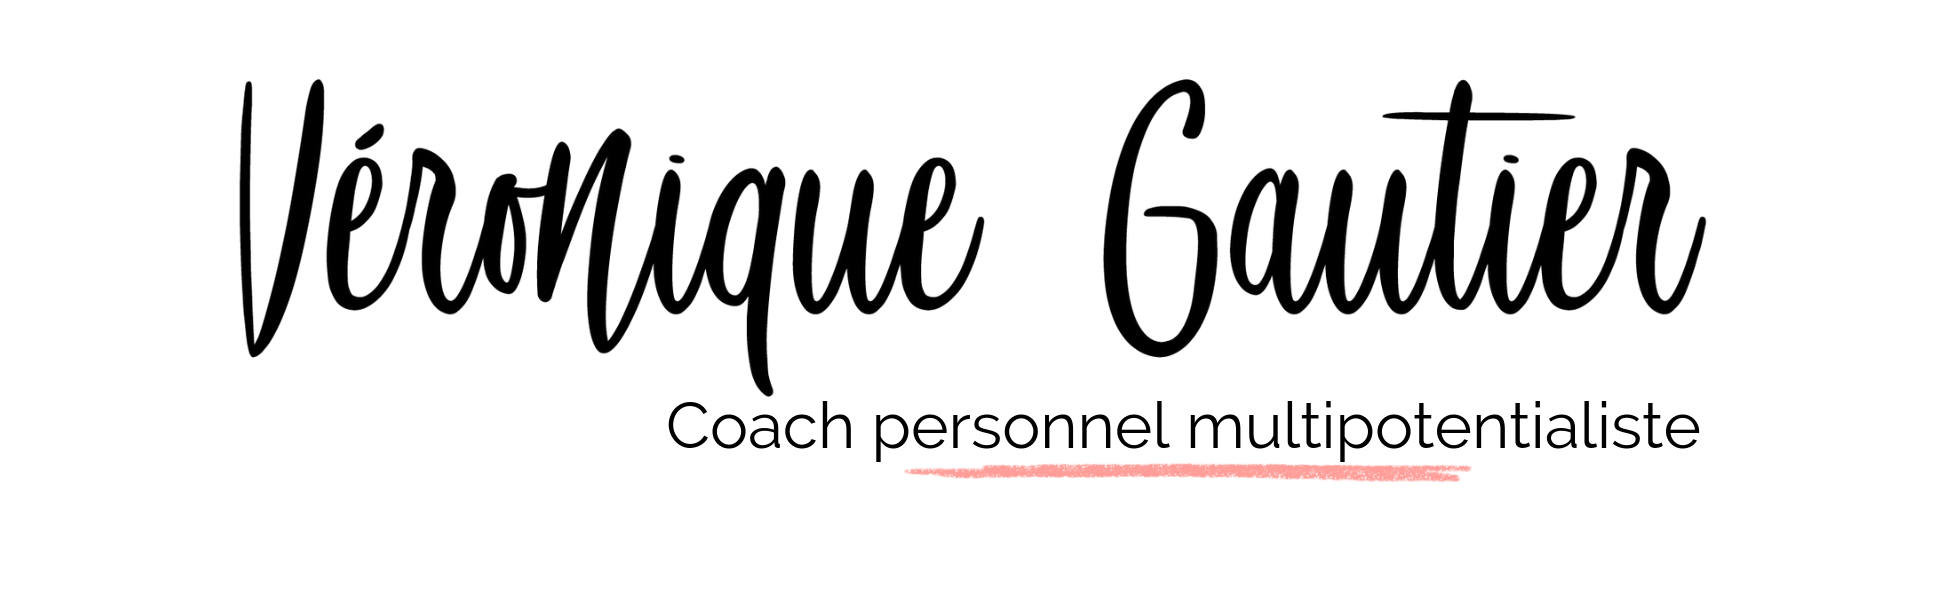 Logo Véronique Gautier Coach multipotentialiste